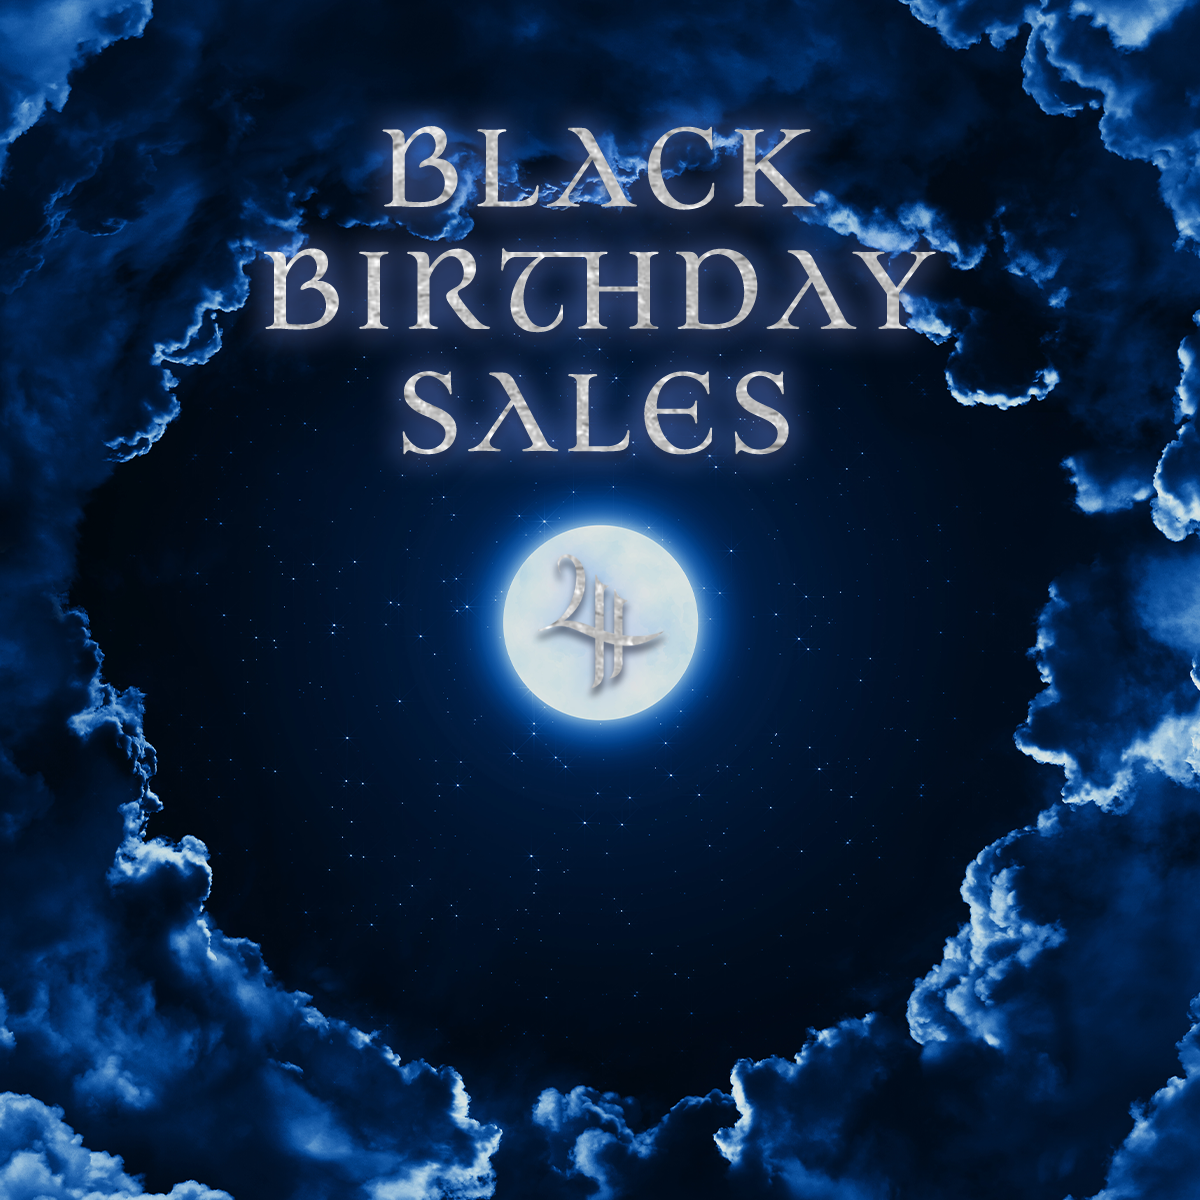 Black Birthday Sales